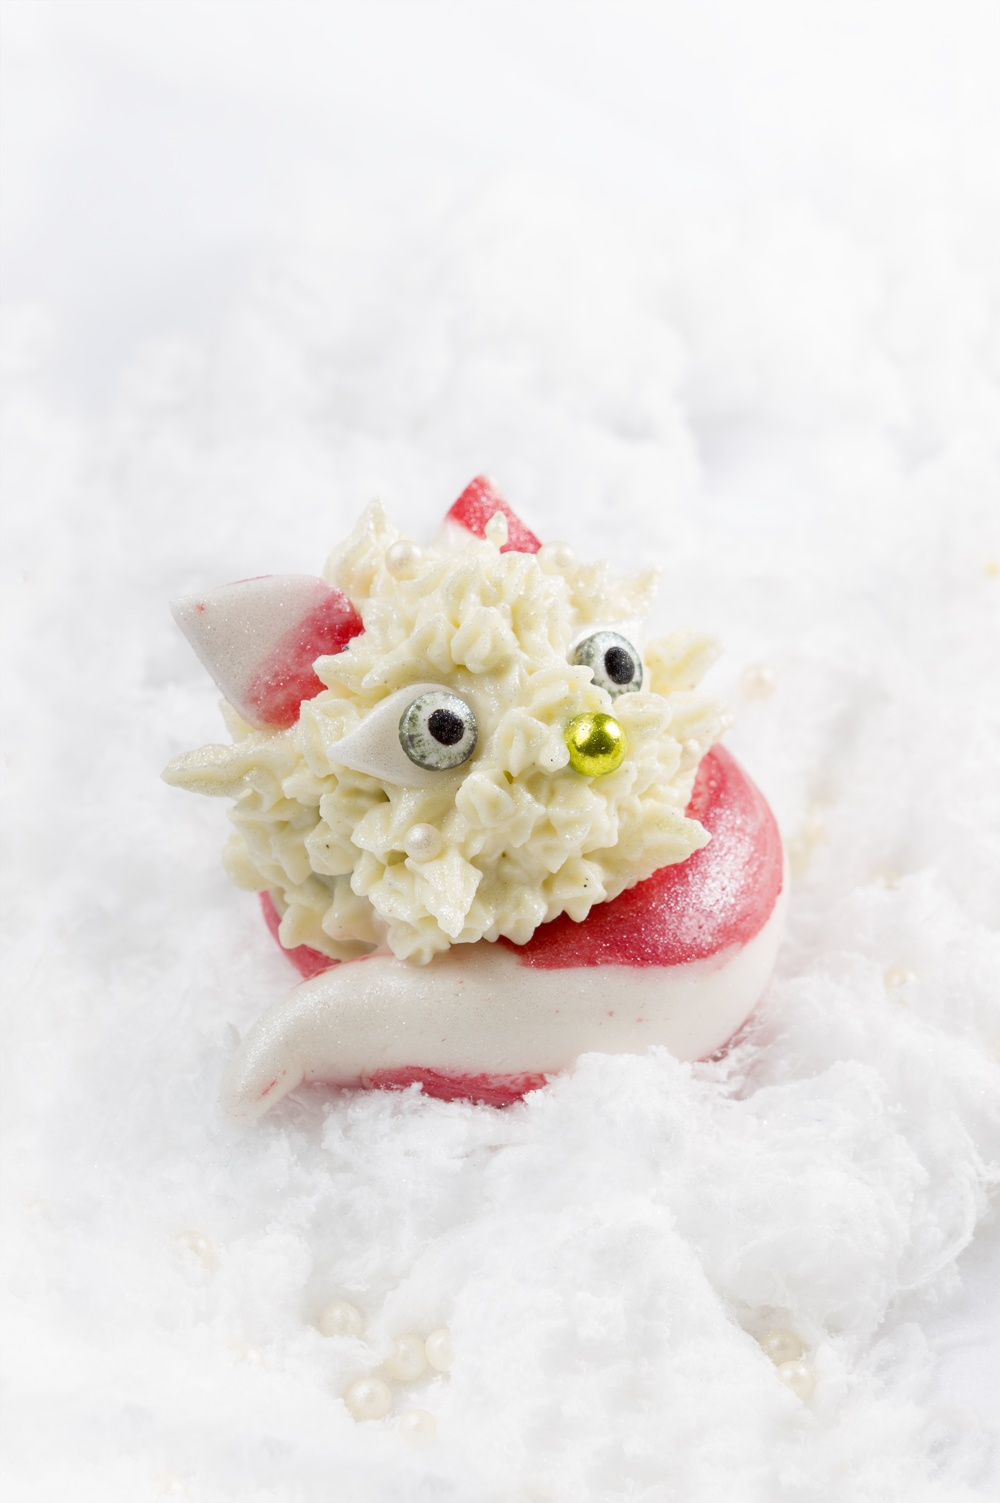 cake-pops-renard-des-neiges-studio-de-creation-qui-a-vole-les-tartes-4